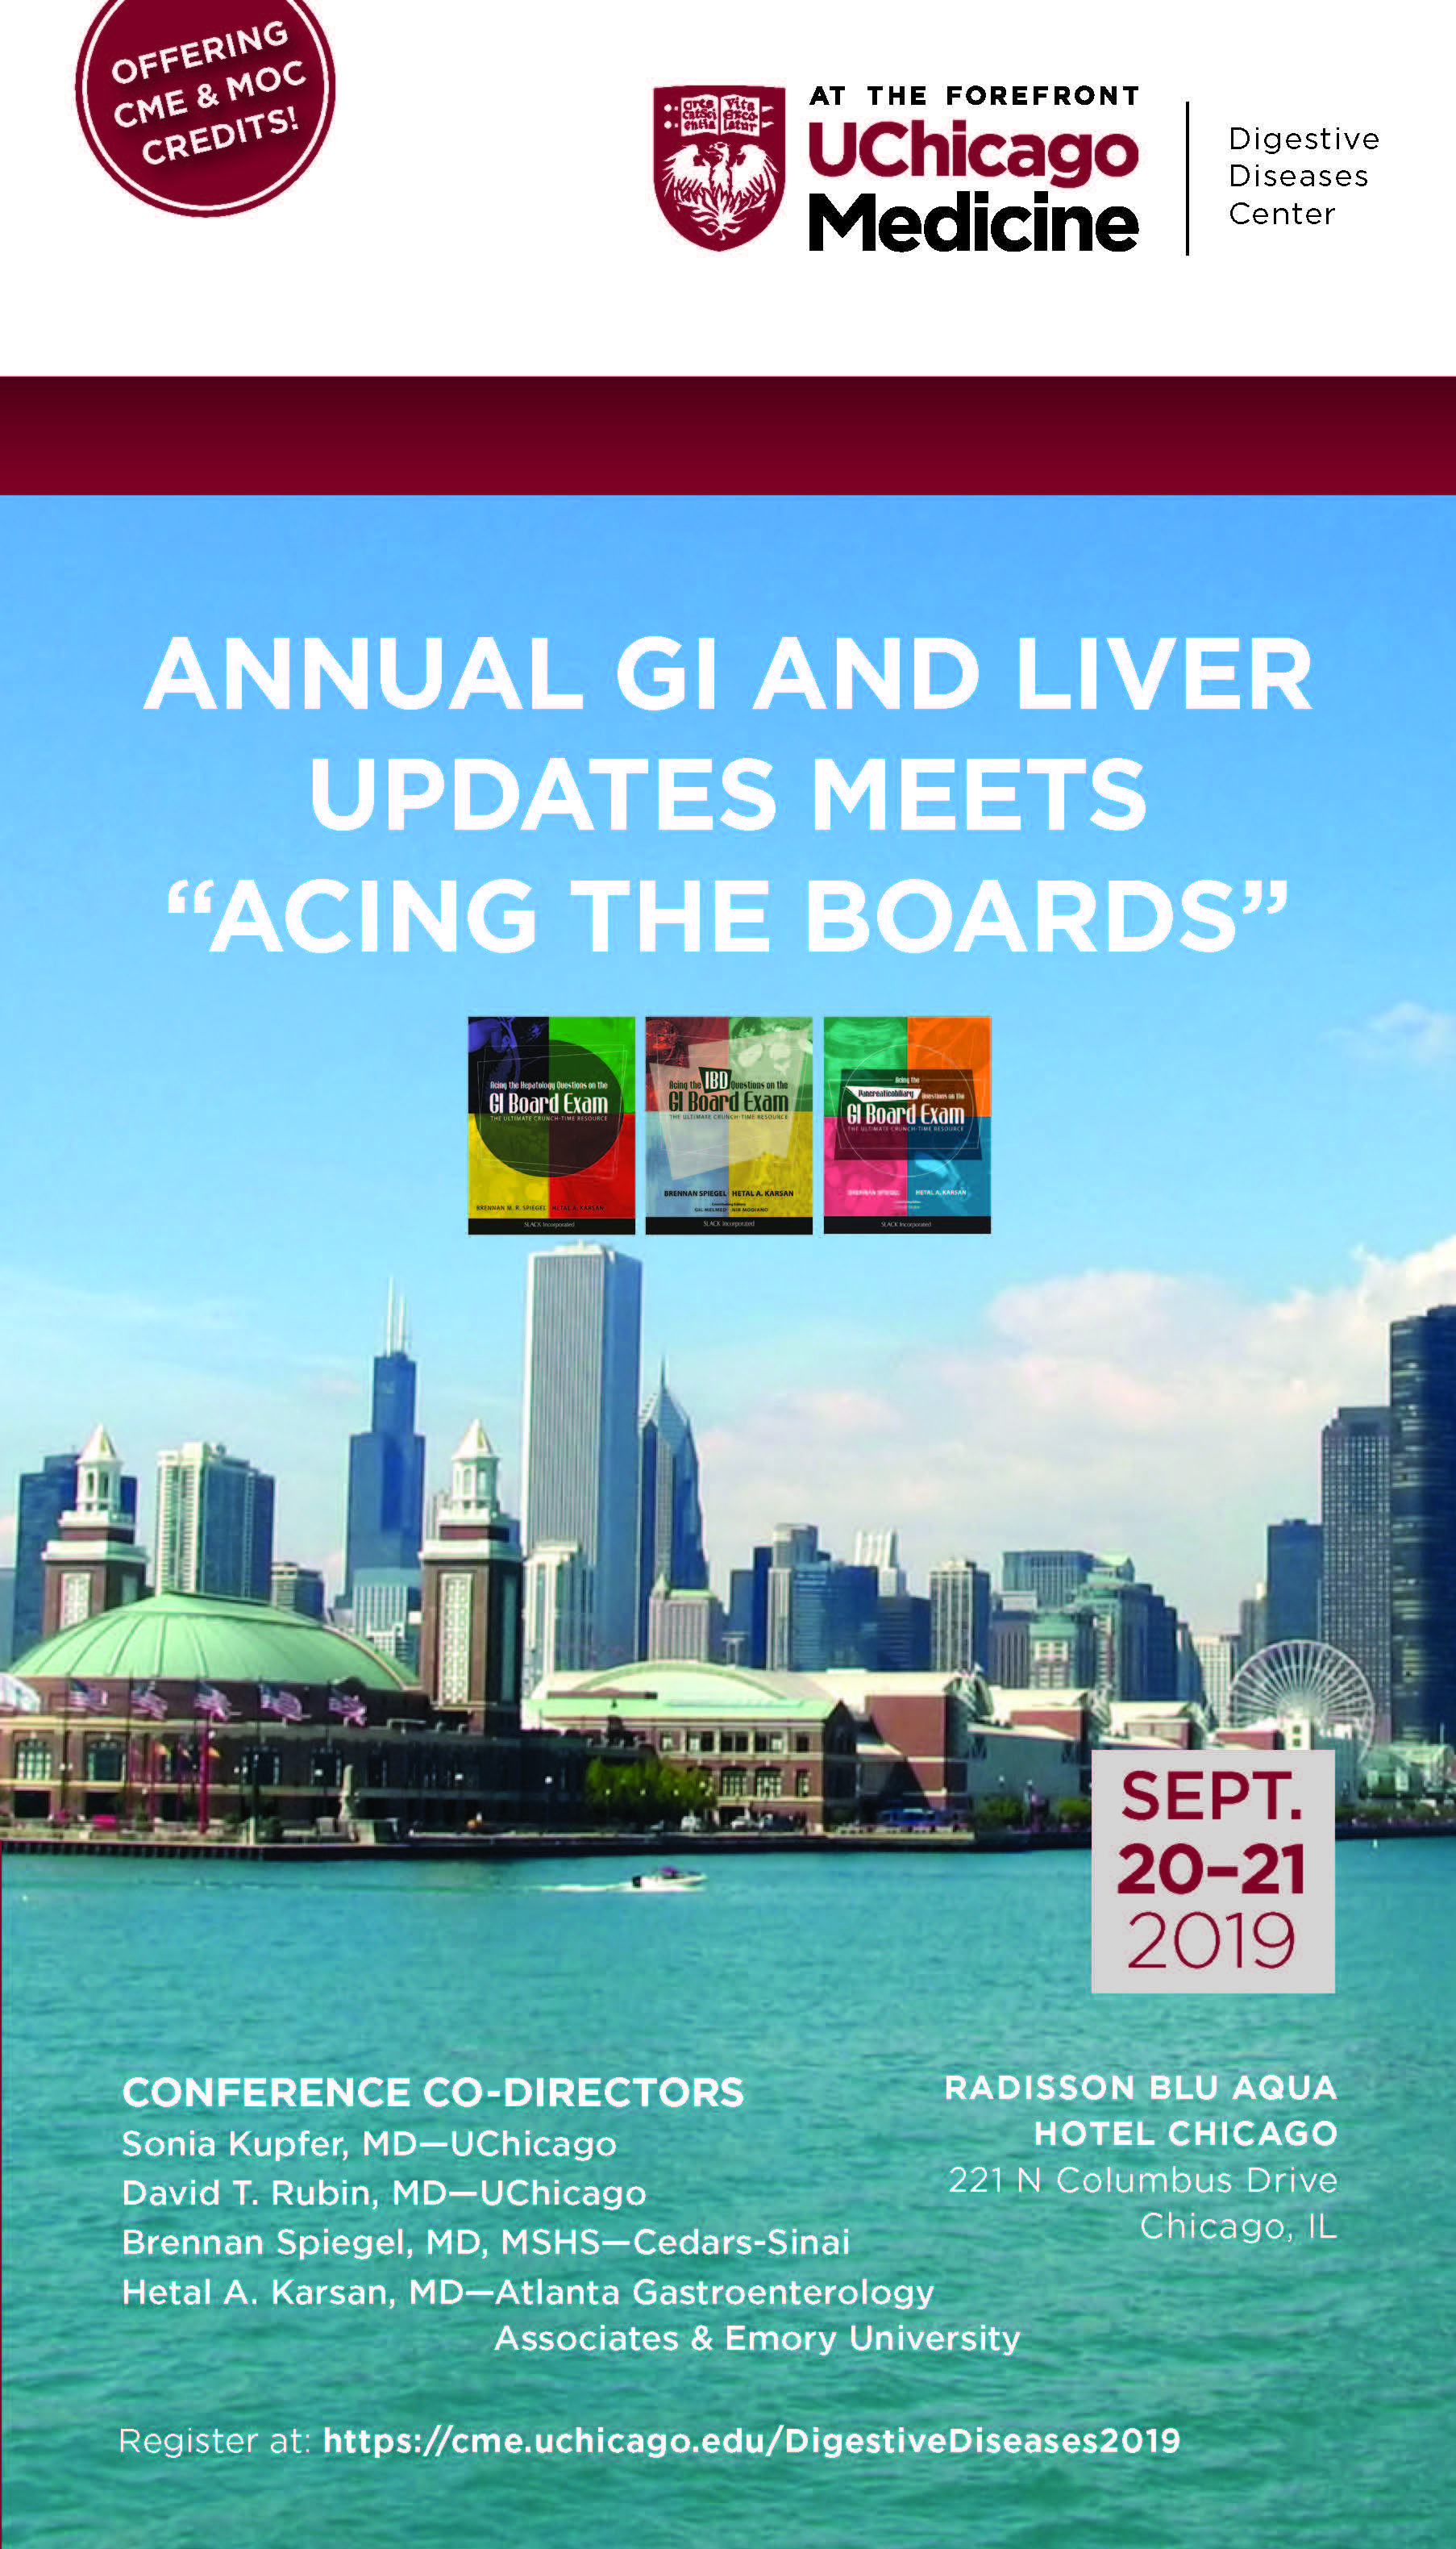 2019 Annual Updates in Digestive Diseases Meets Acing the GI